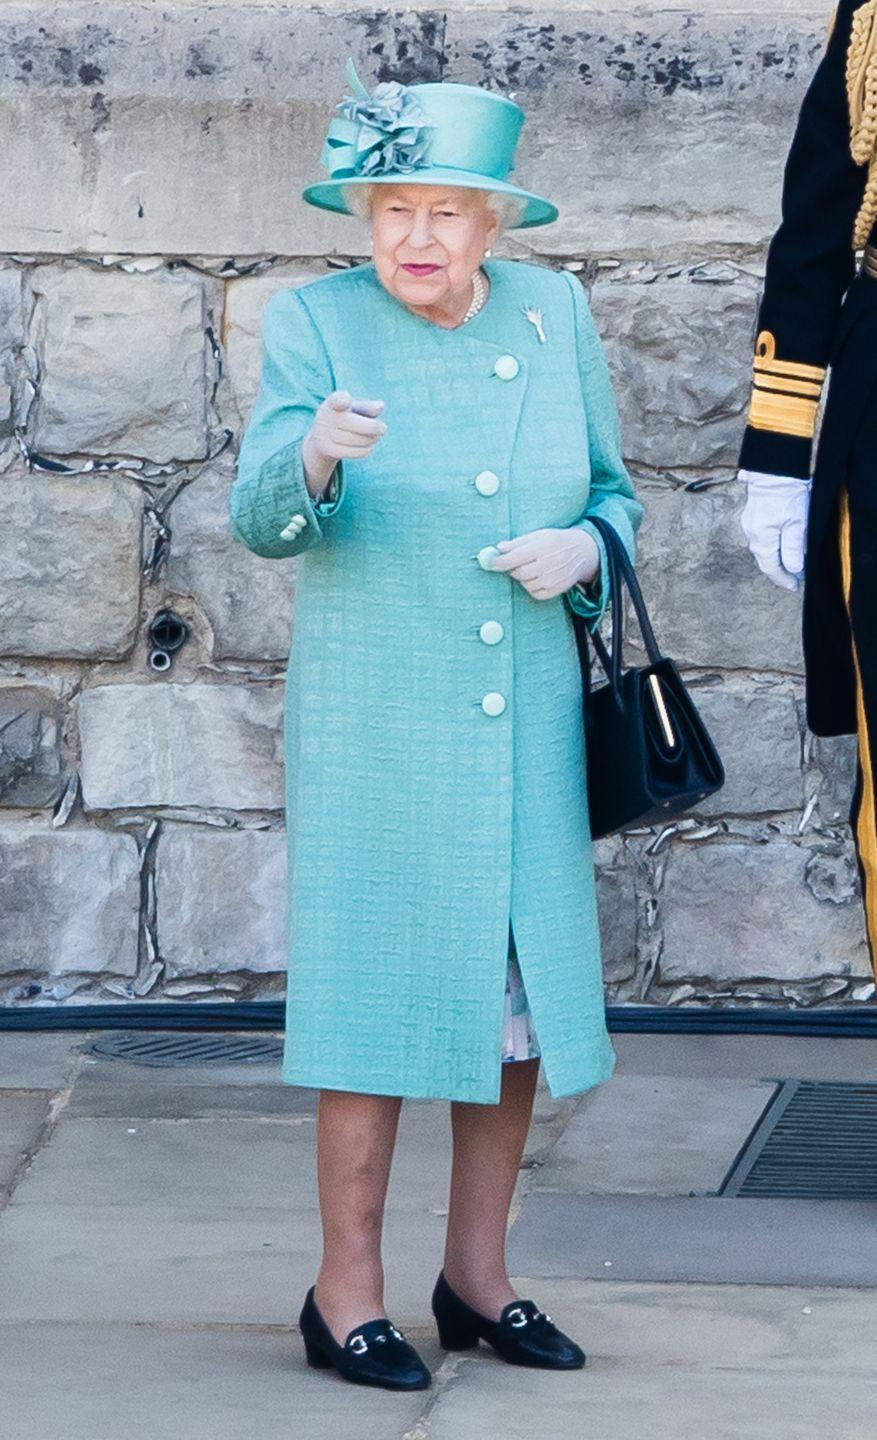 "<p>Queen Elizabeth wore a stunning coat by Stewart Parvin for her birthday celebration. She accessorized the look with a matching hat by Rachel Trevor-Morgan, per <a href=""https://www.hellomagazine.com/fashion/royal-style/2020061391494/queen-stuns-stewart-parvin-floral-dress-trooping-the-colour/"" rel=""nofollow noopener"" target=""_blank"" data-ylk=""slk:Hello!"" class=""link rapid-noclick-resp""><em>Hello!</em></a>.</p>"